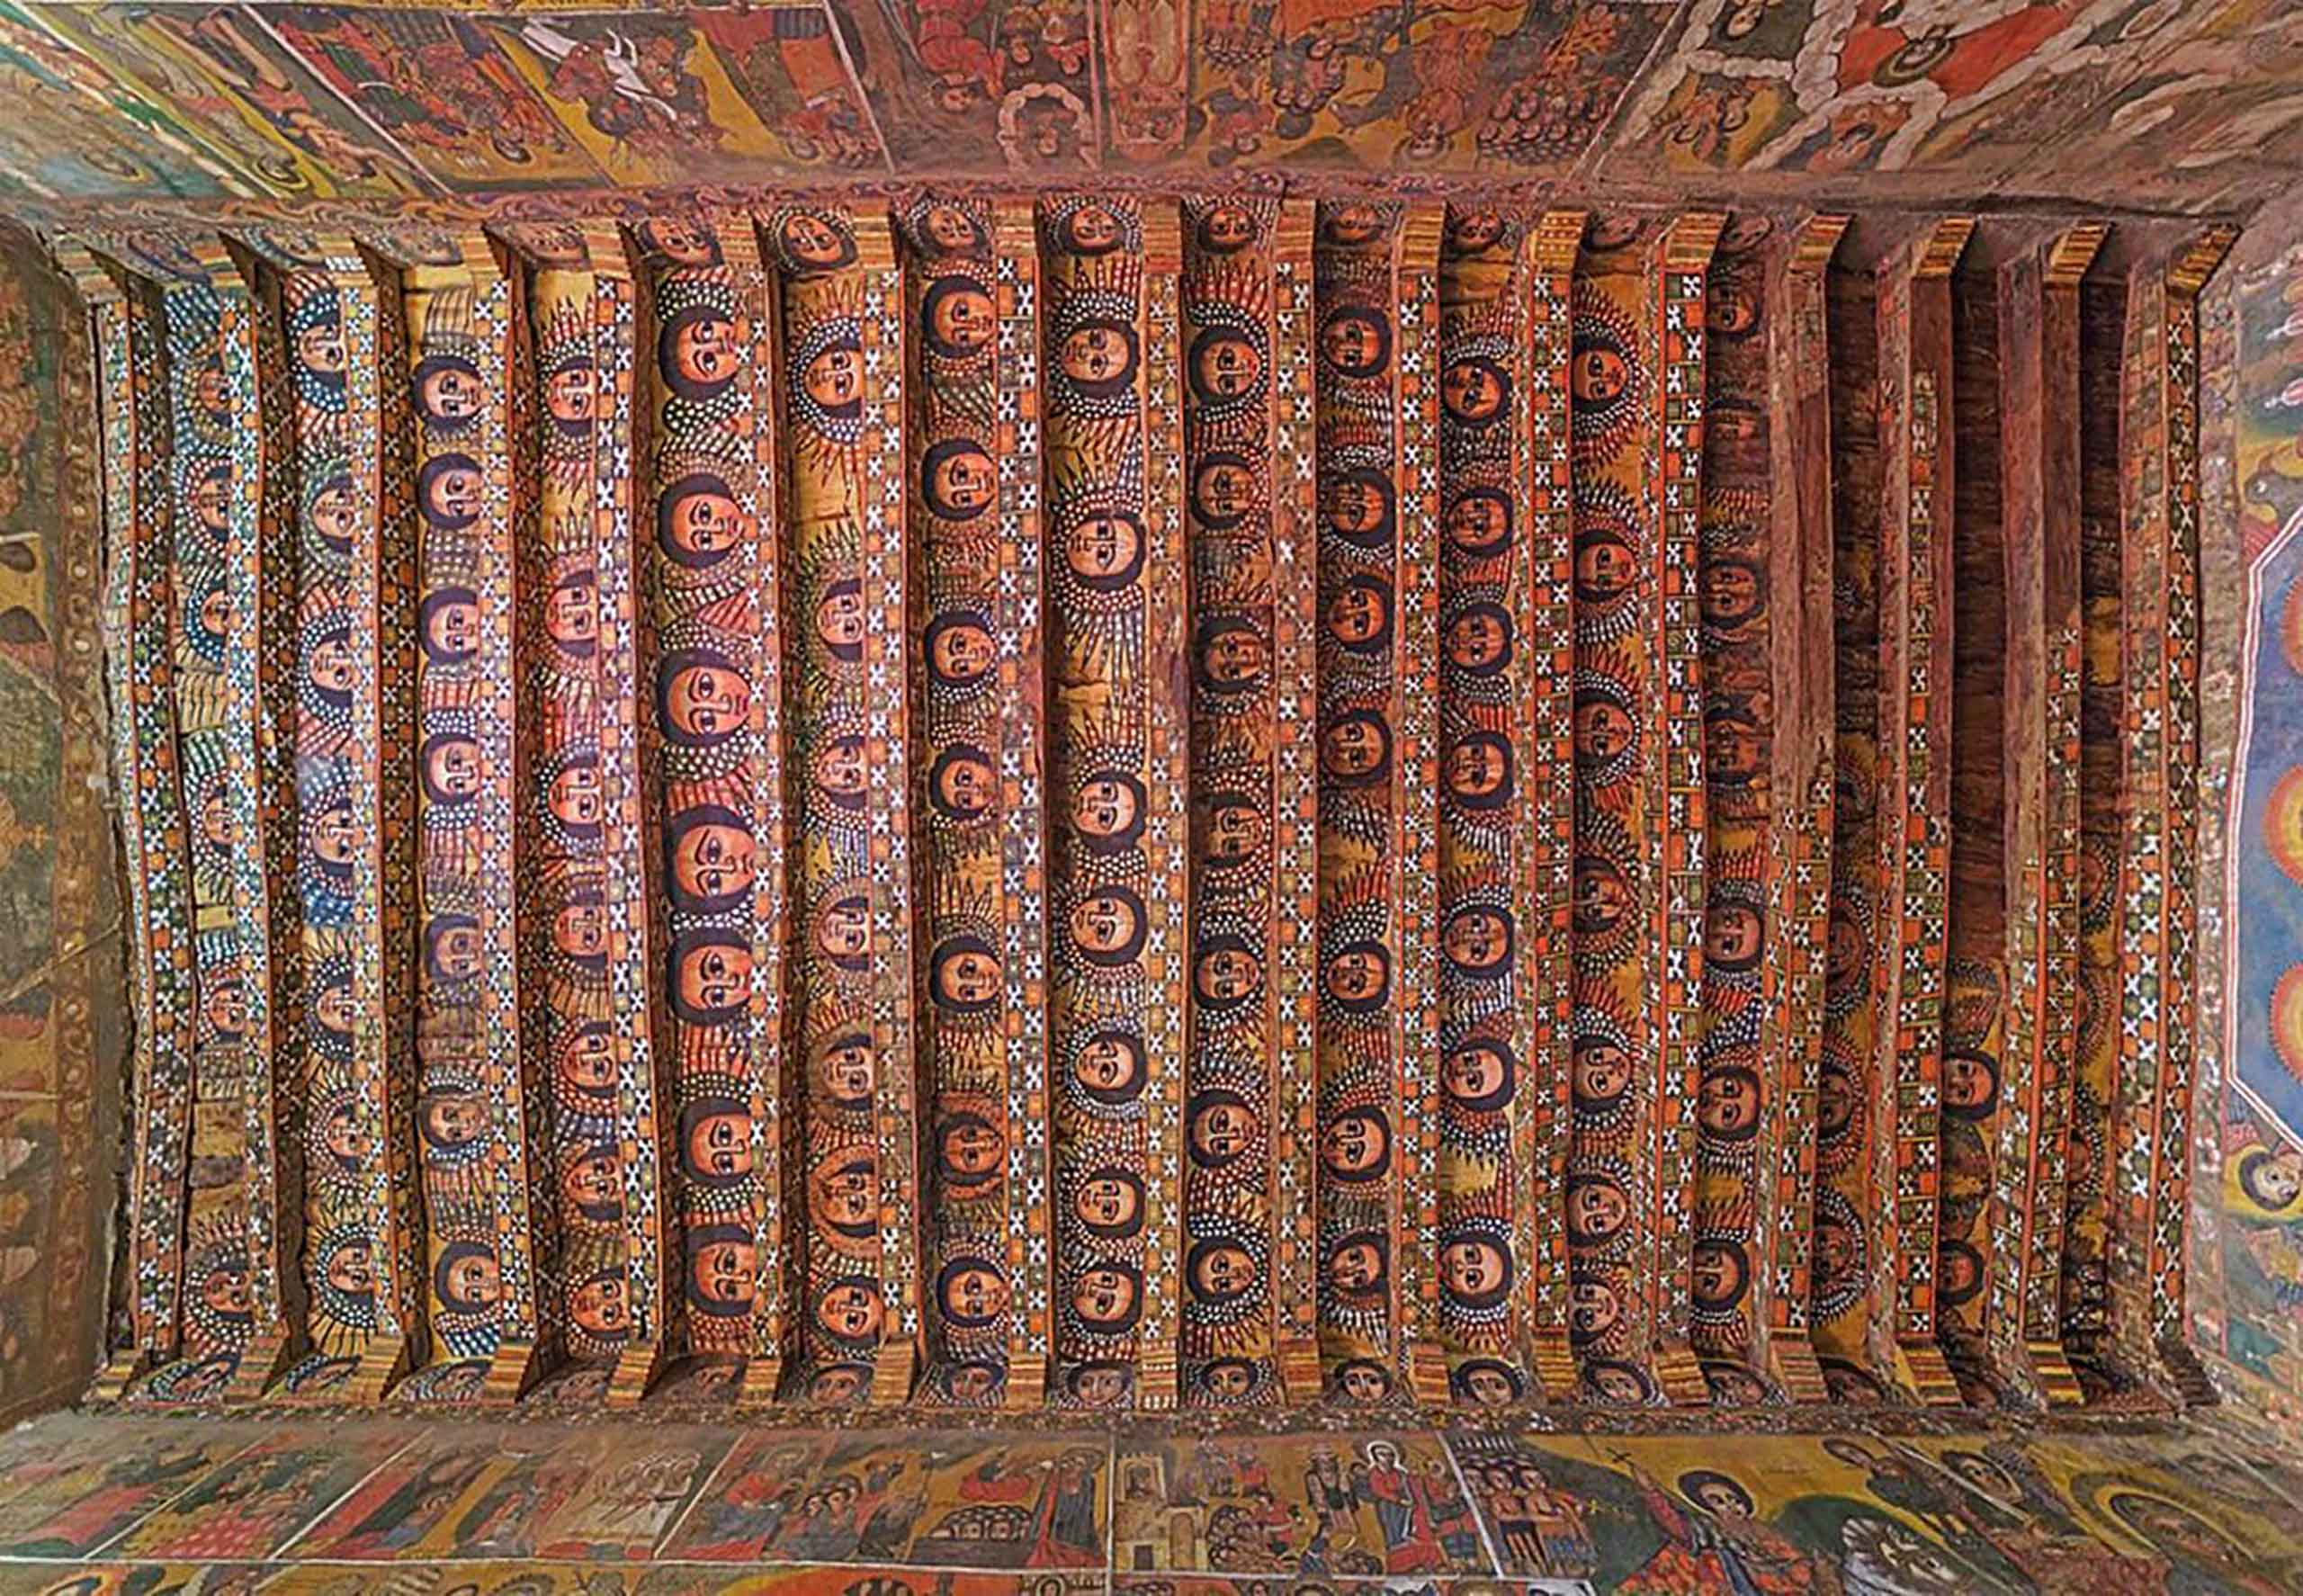 Painted angel faces in rich red, blue and golden hues on the ceiling of the Debre Berhan Selassie Church in Gondar, Ethiopia.